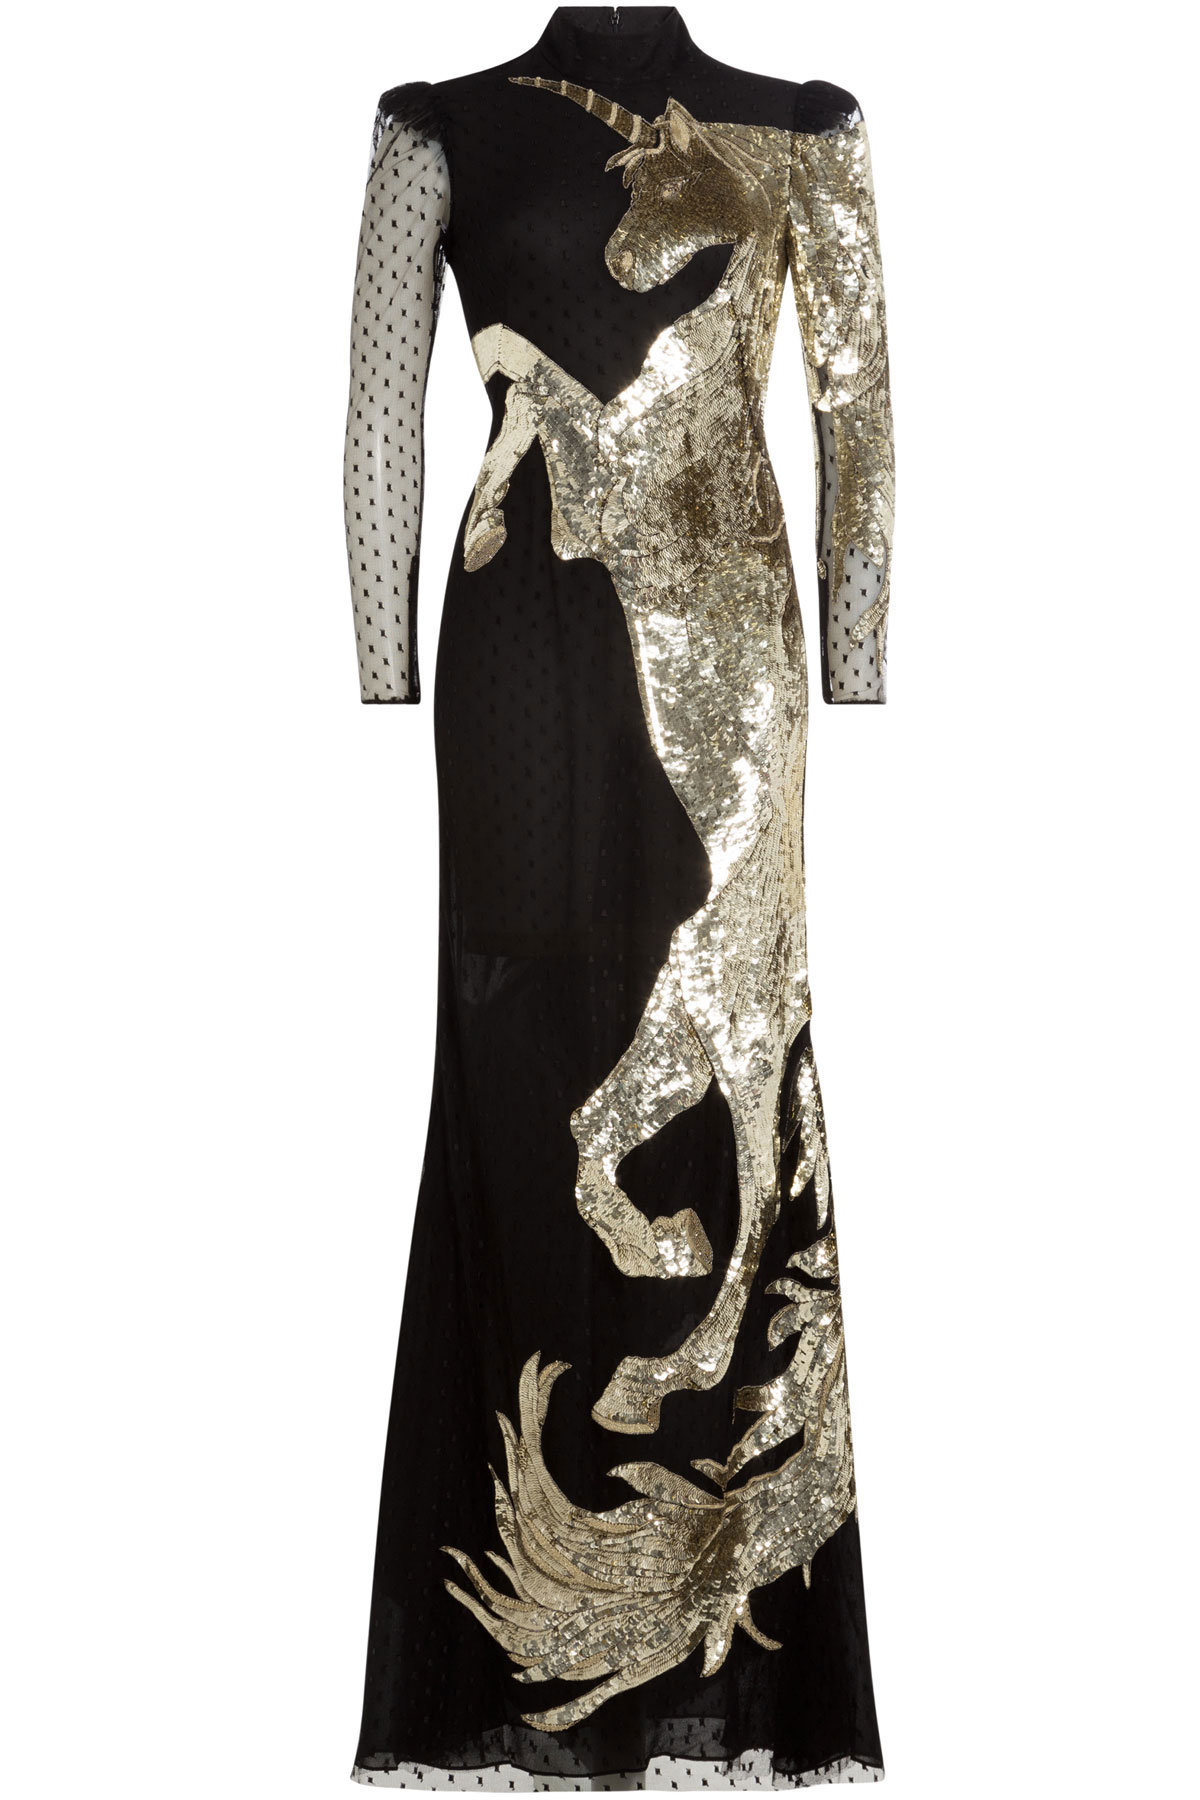 Alexander McQueen Embellished Floor Length Gown black gold sequin